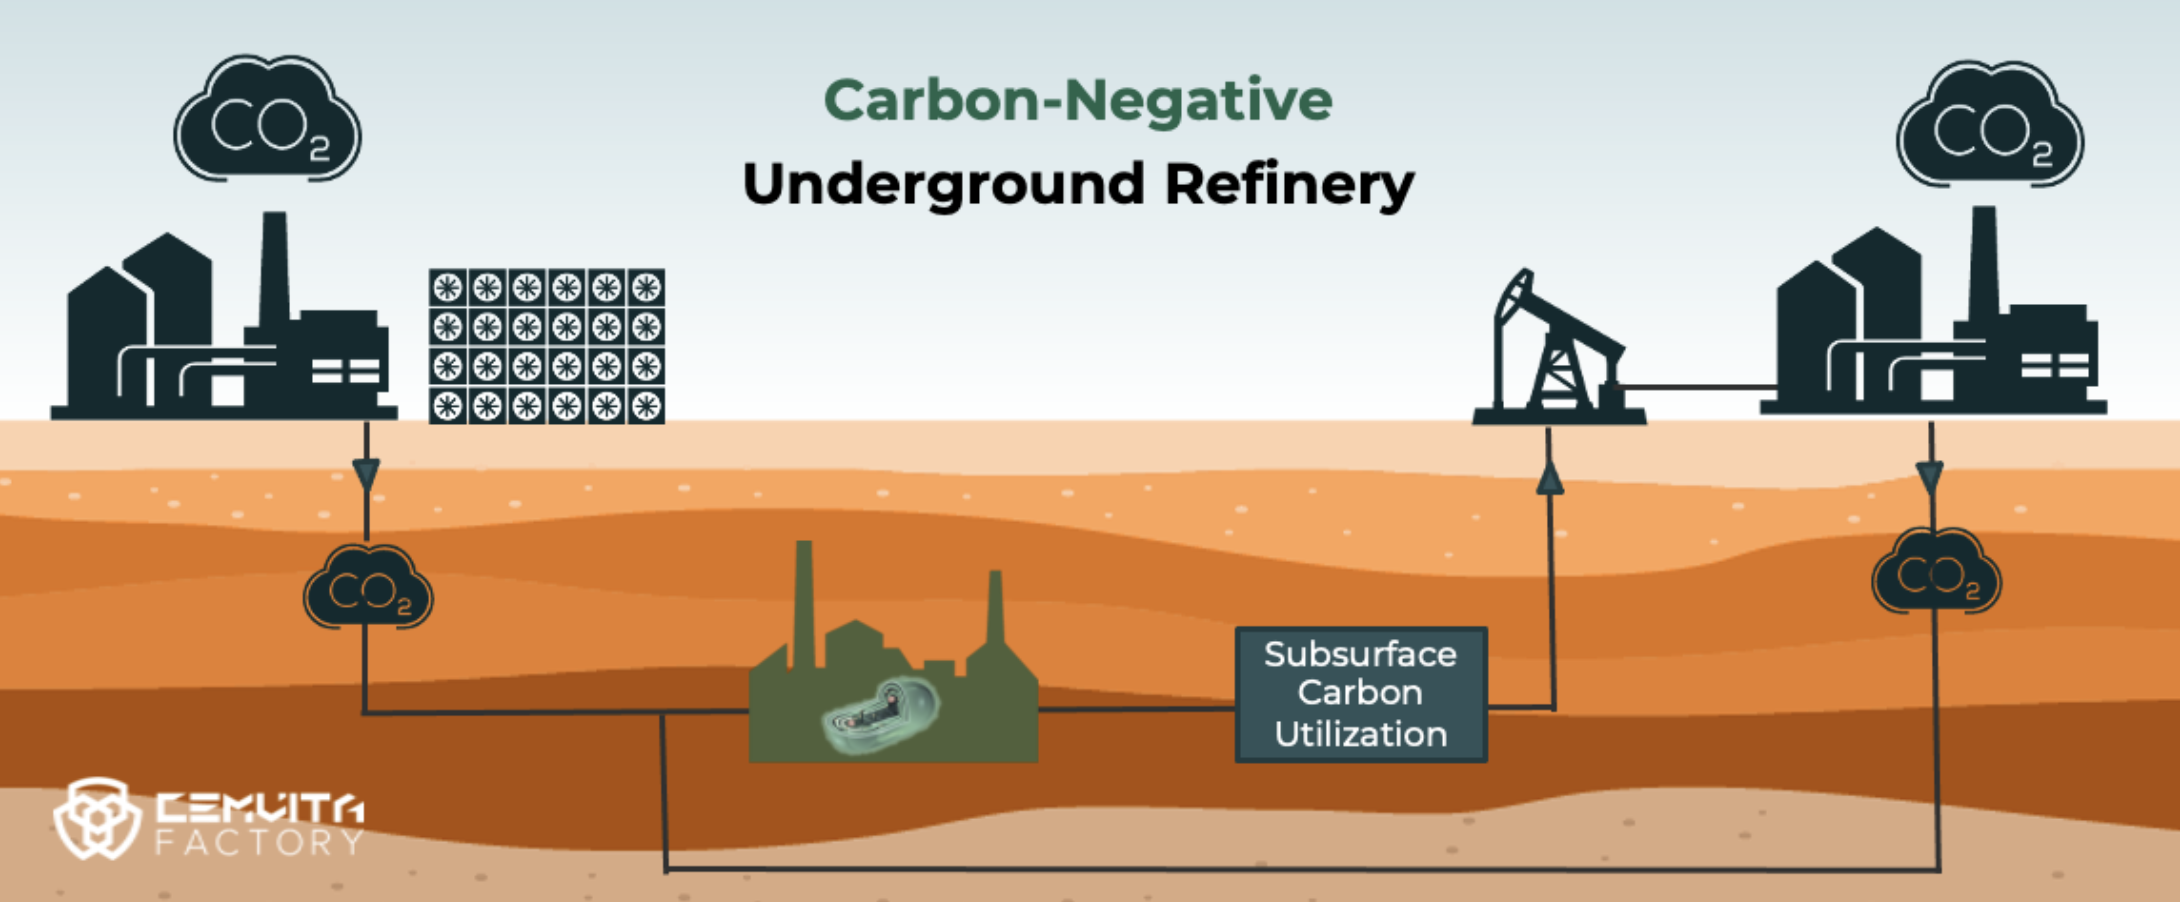 a carbon negative underground refinery infographic that shows you where the process starts and ends